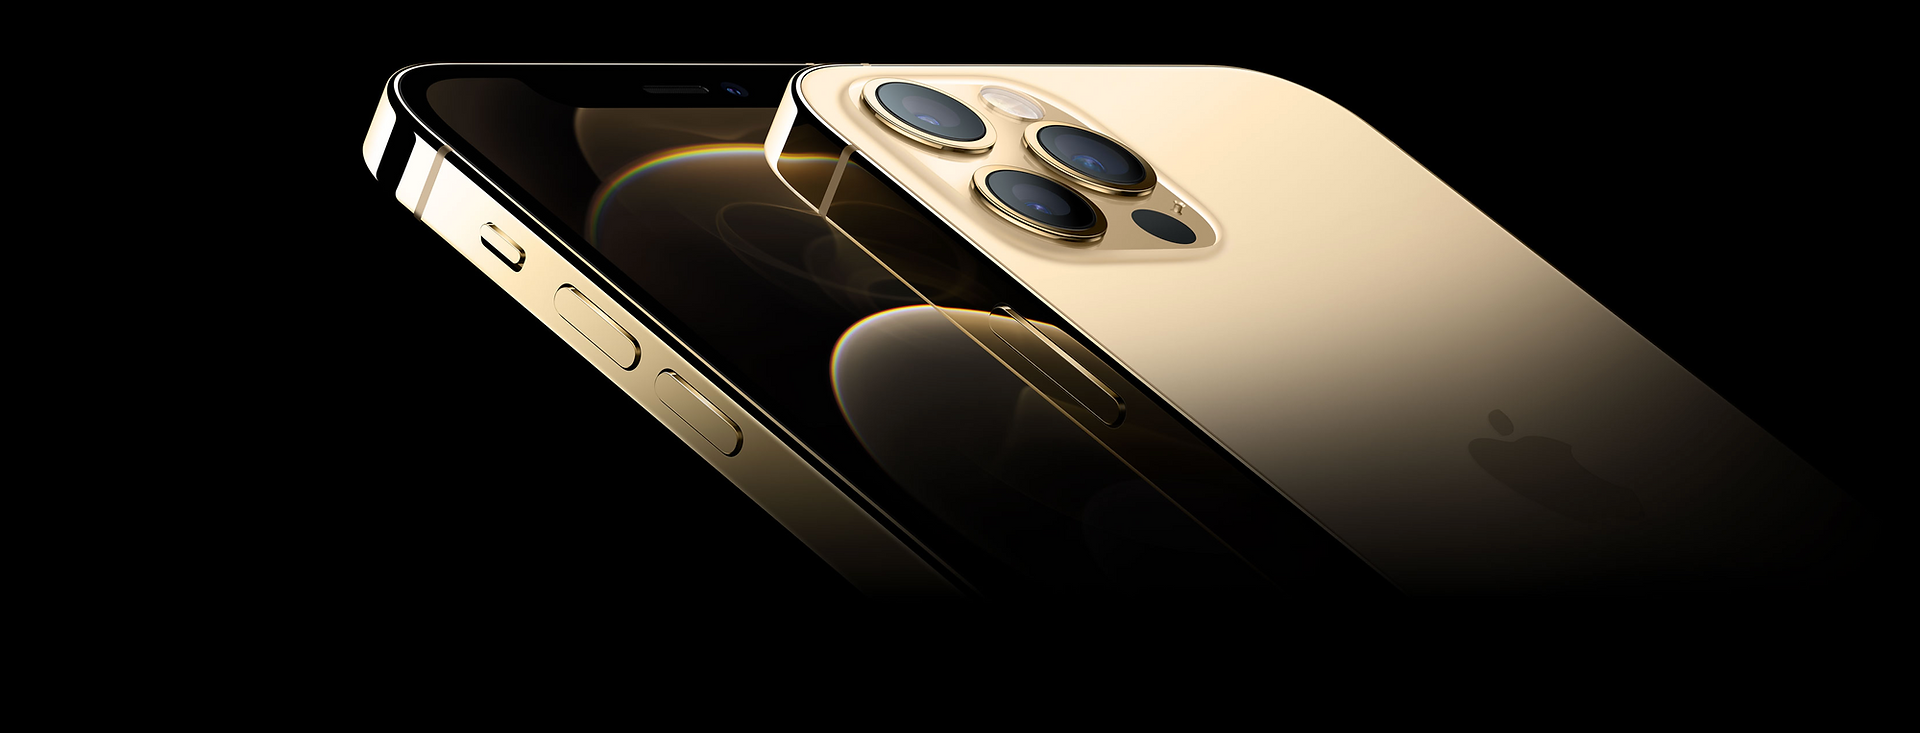 iPhone 12 gold.png